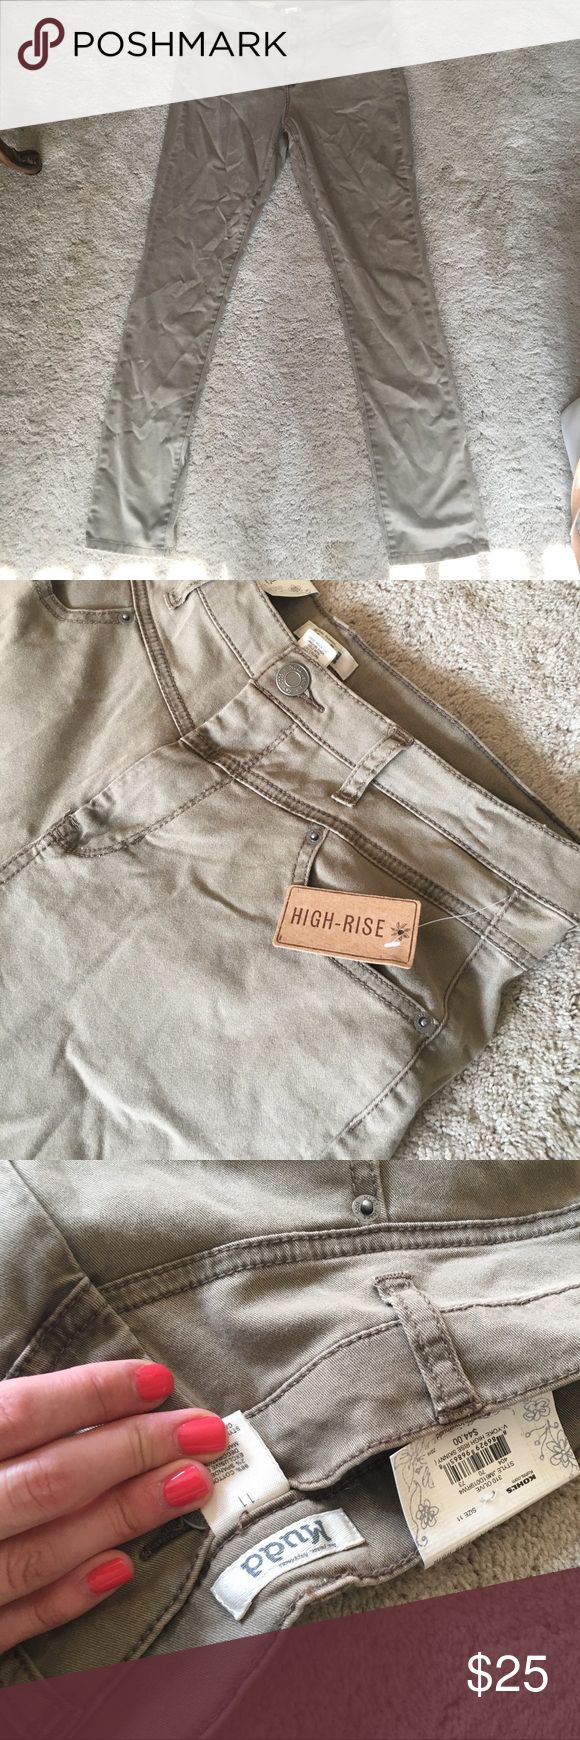 NEW WITH TAGS HIGH RISE TAN SKINNY JEANS Brand New never worn tannish brown high rise skinny jeans! Comfy and cute! Back hip pockets, belt loop and front pockets. Mudd Jeans Skinny